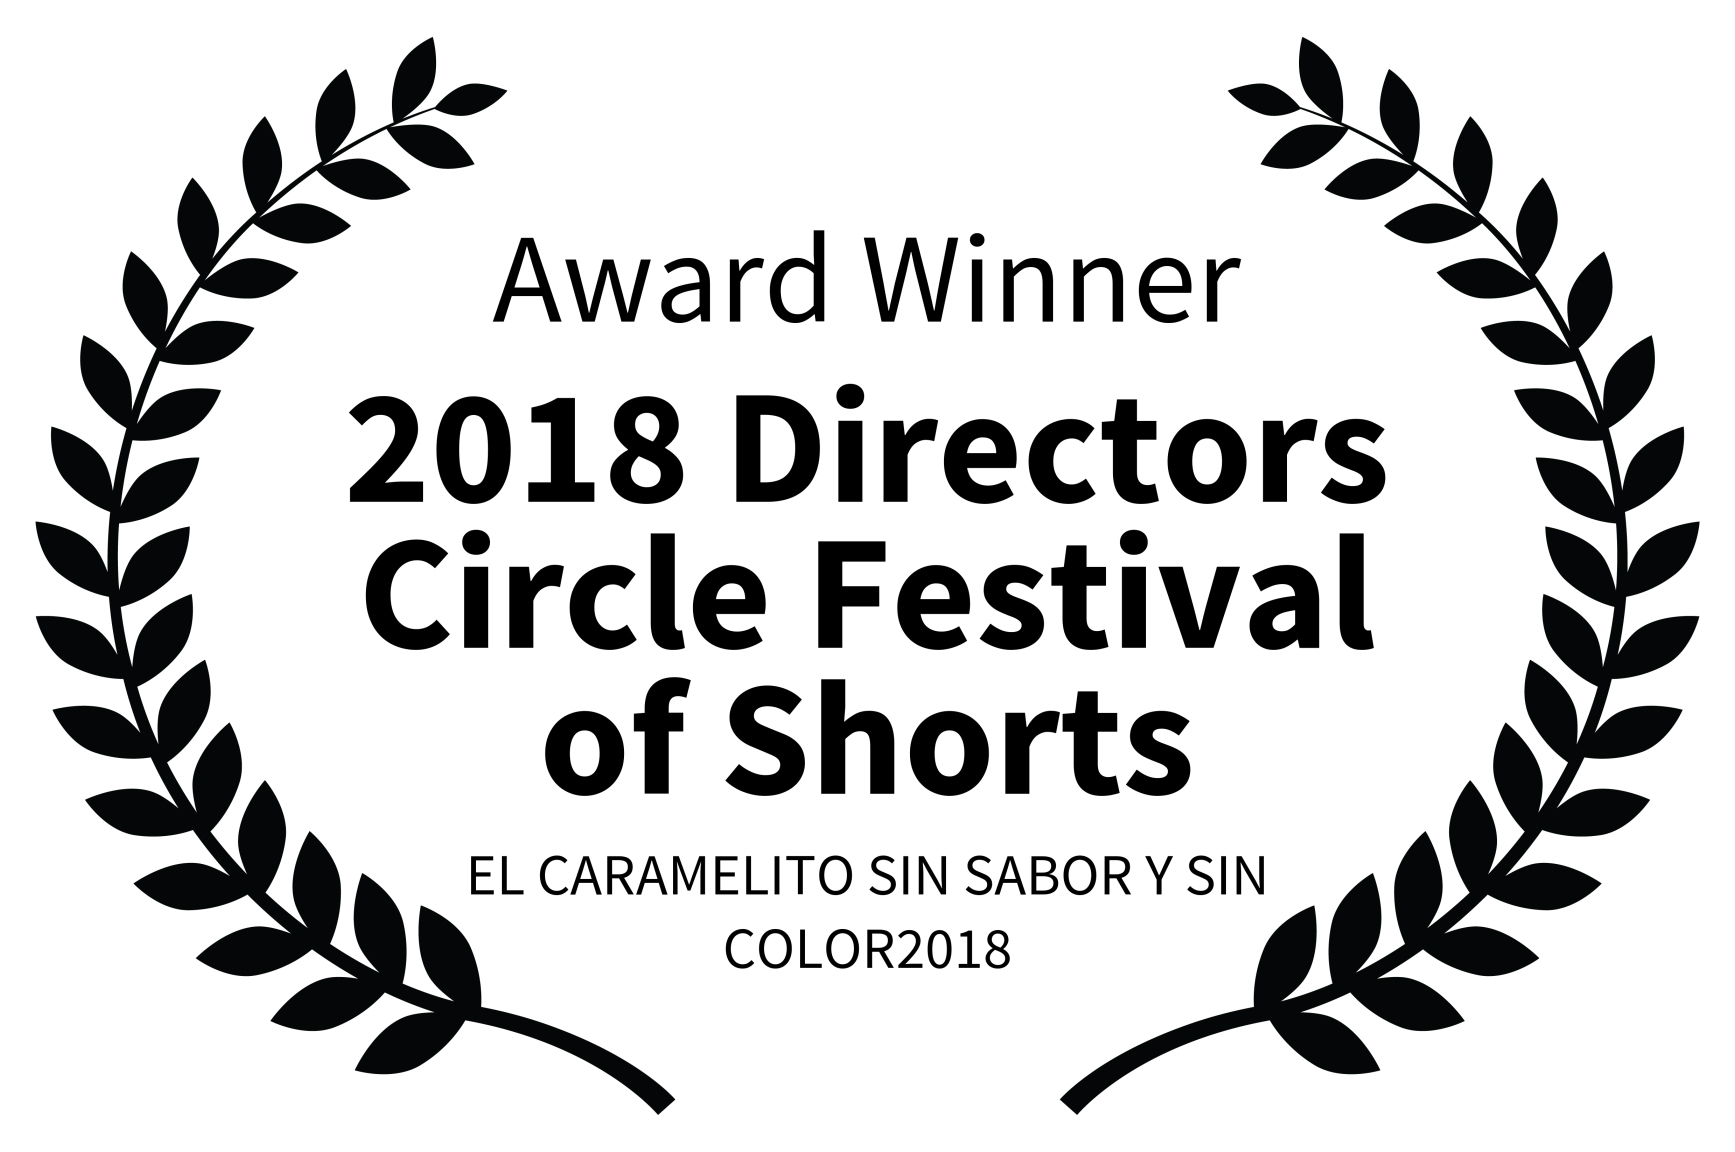 Award Winner - 2018 Directors Circle Fes